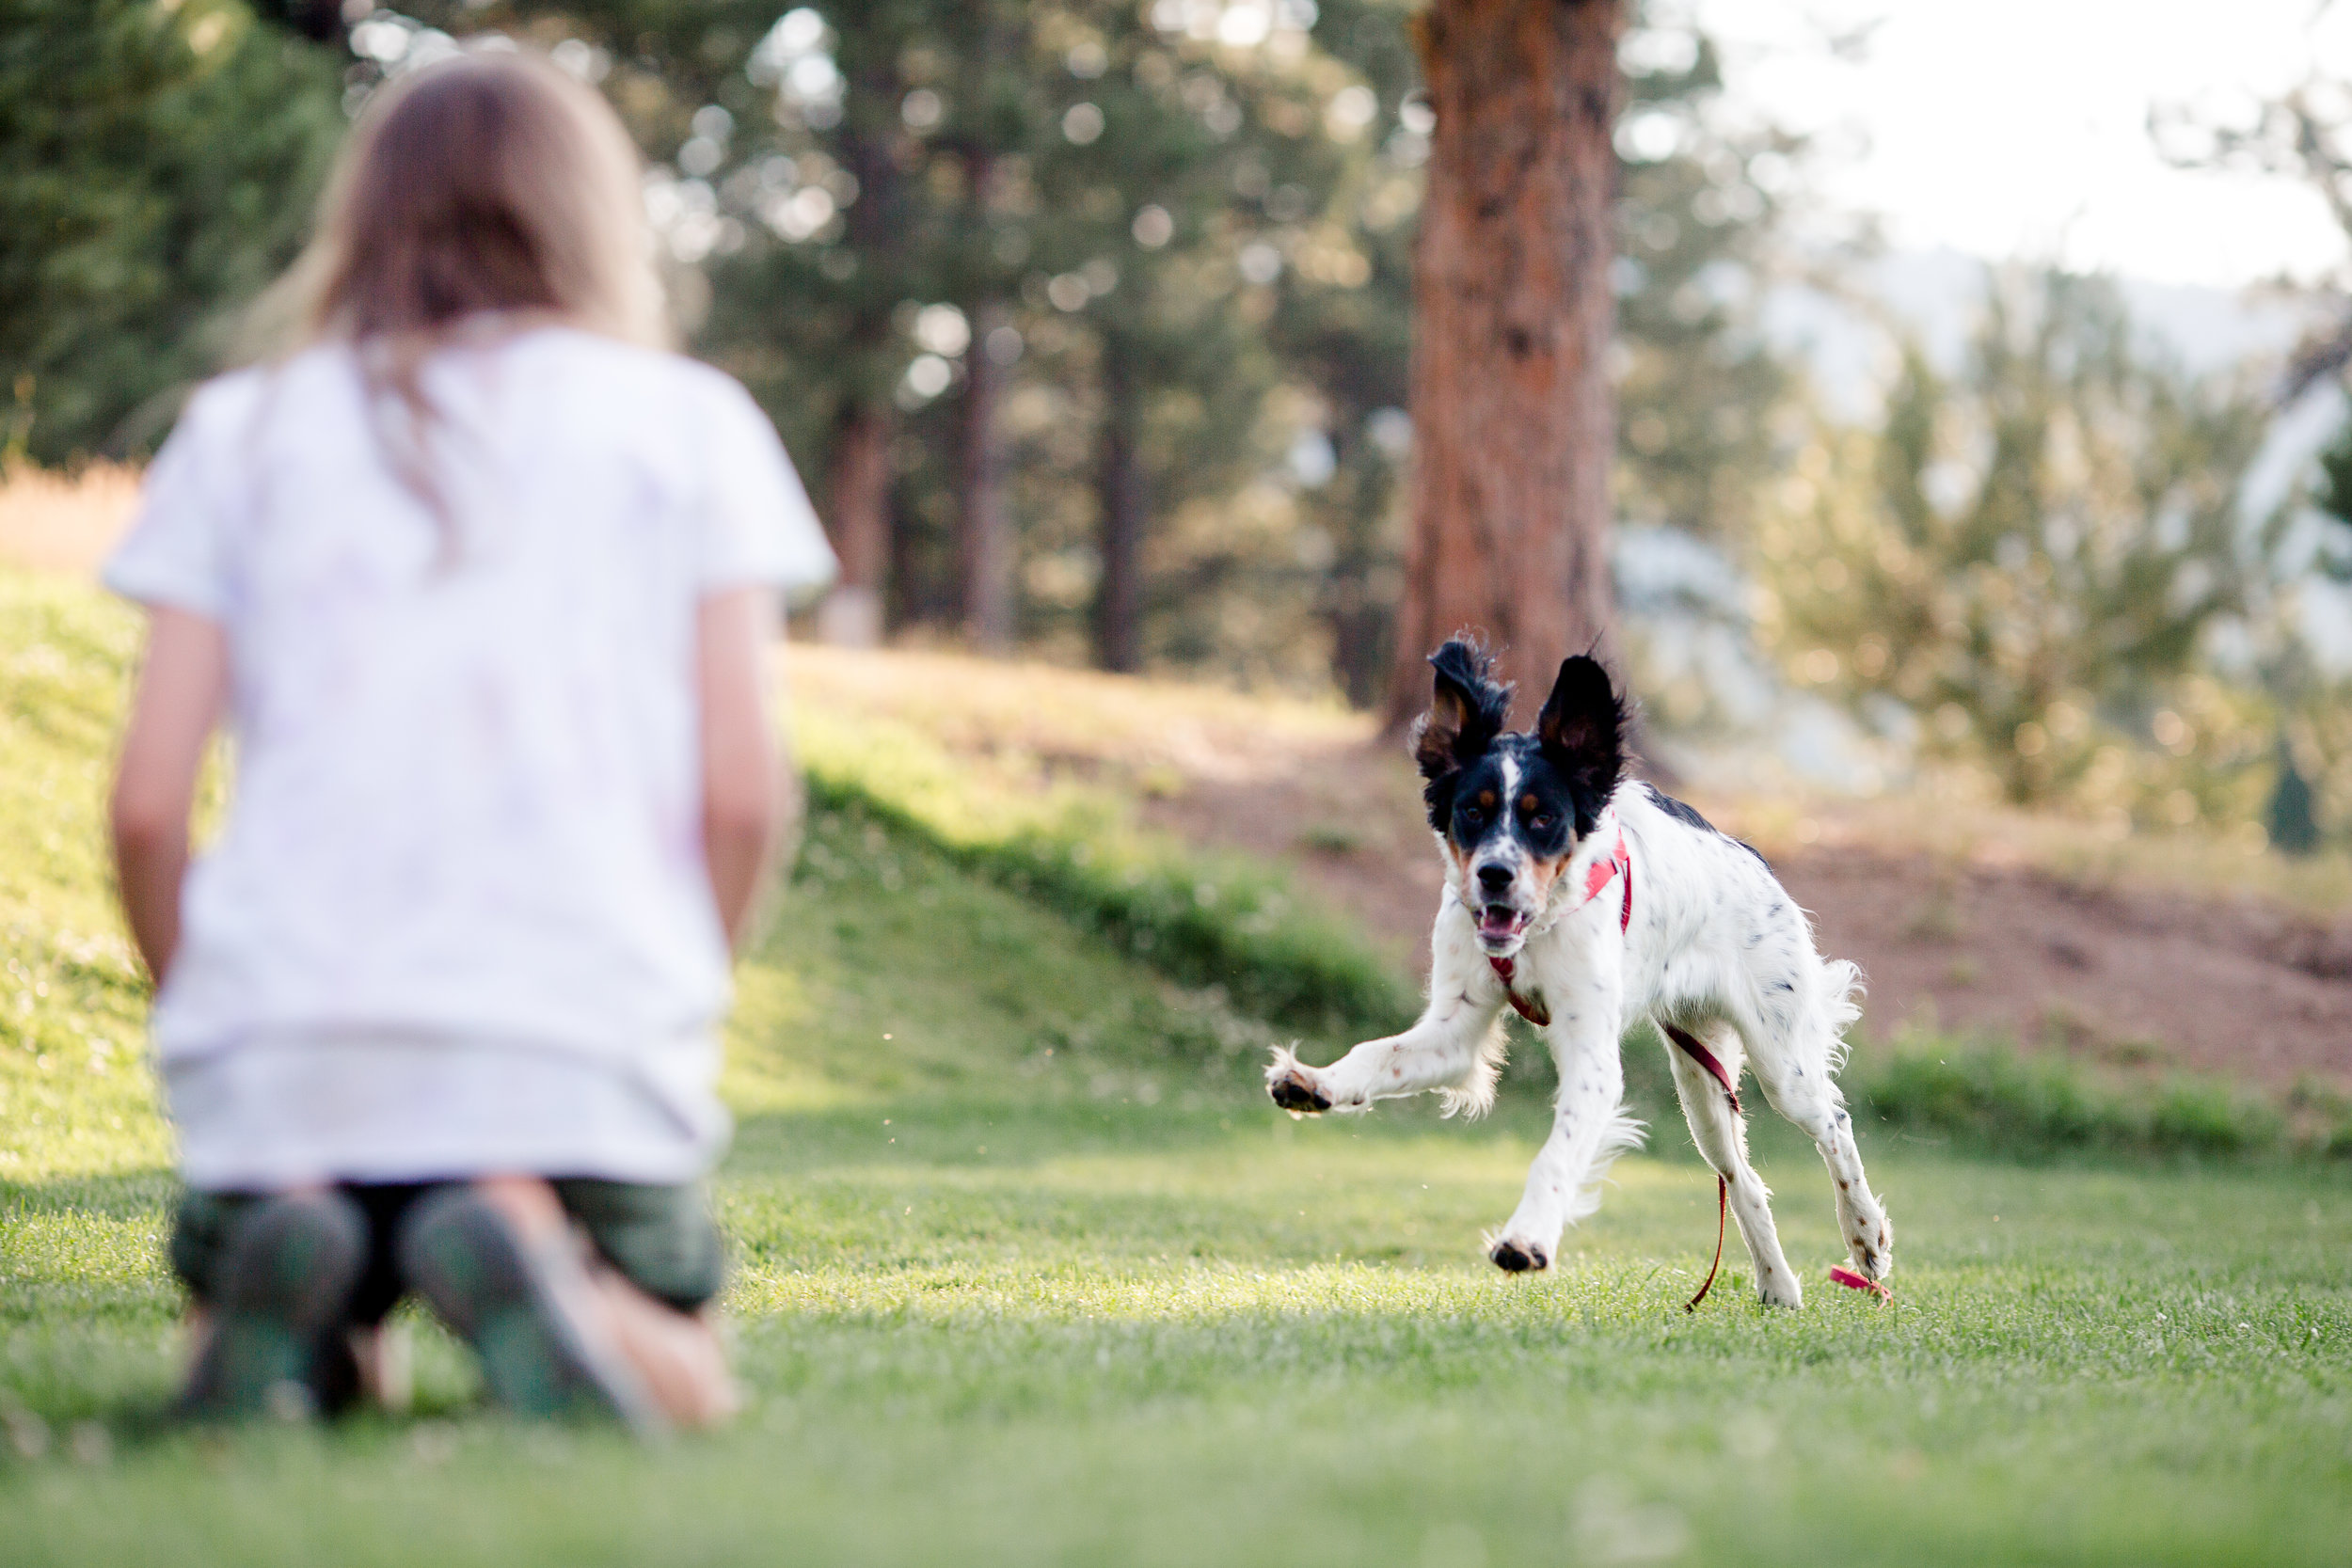 Group Dog Obedience Classes provide lessons in basic cues, manners and loose leash walking.